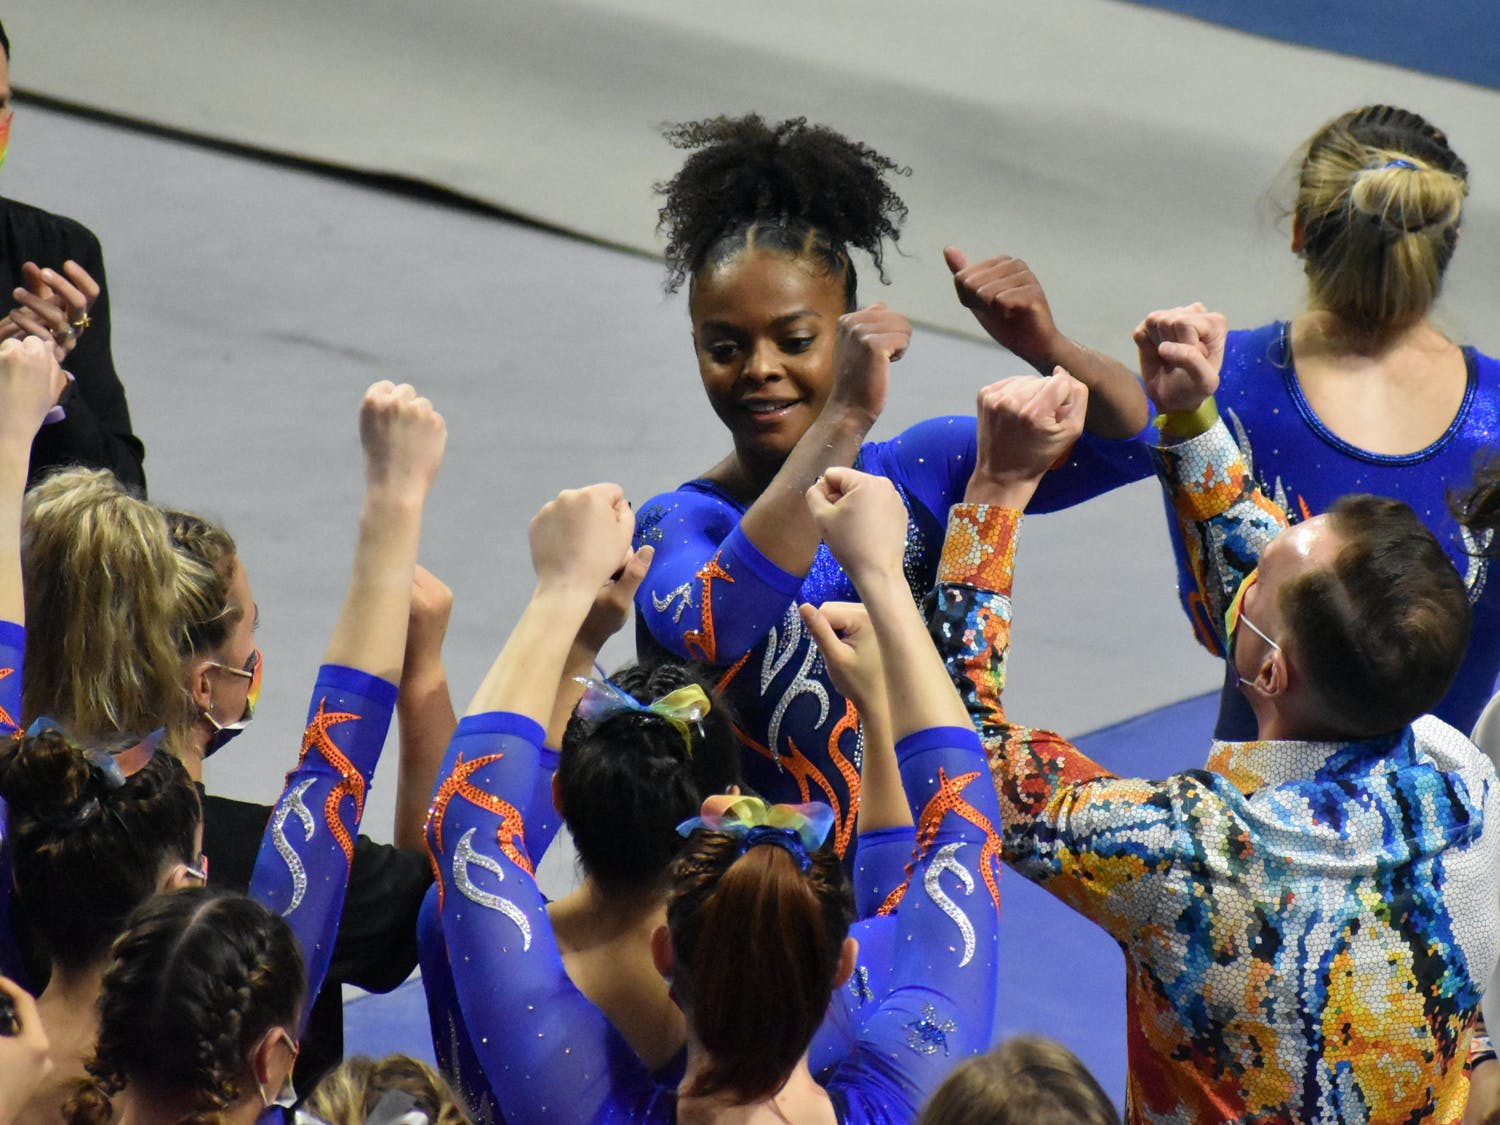 Thomas capped off a strong team performance that lifted the Gators to a first-place finish in their second-round session in Athens, Georgia, Friday. Photo from UF-Mizzou meet Jan. 29.